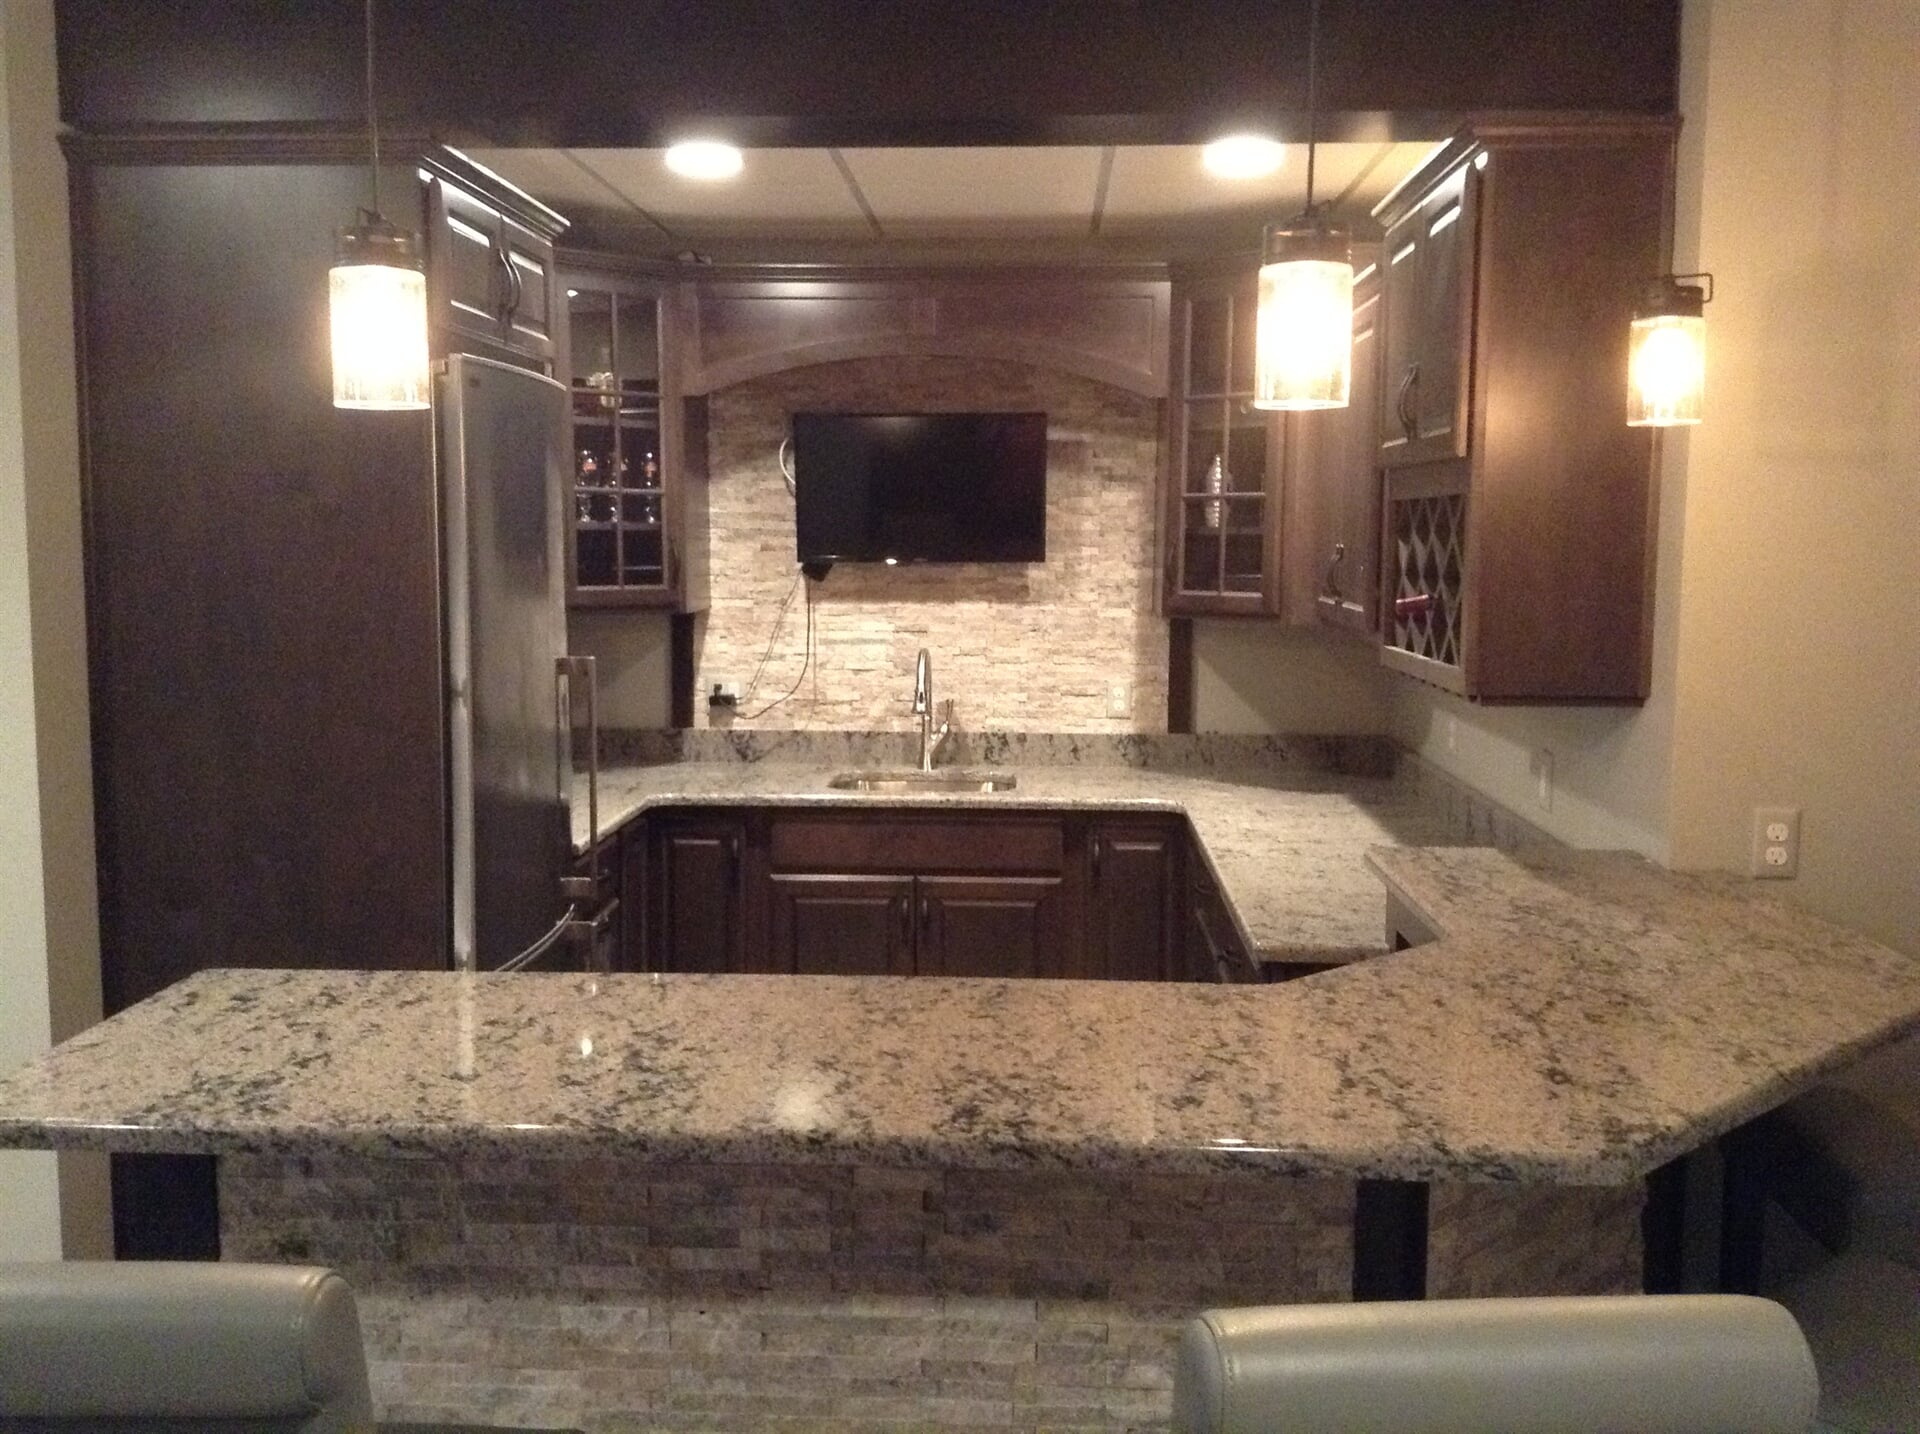 Kitchen countertop installation with tile backsplash and accents in Monroe, MI